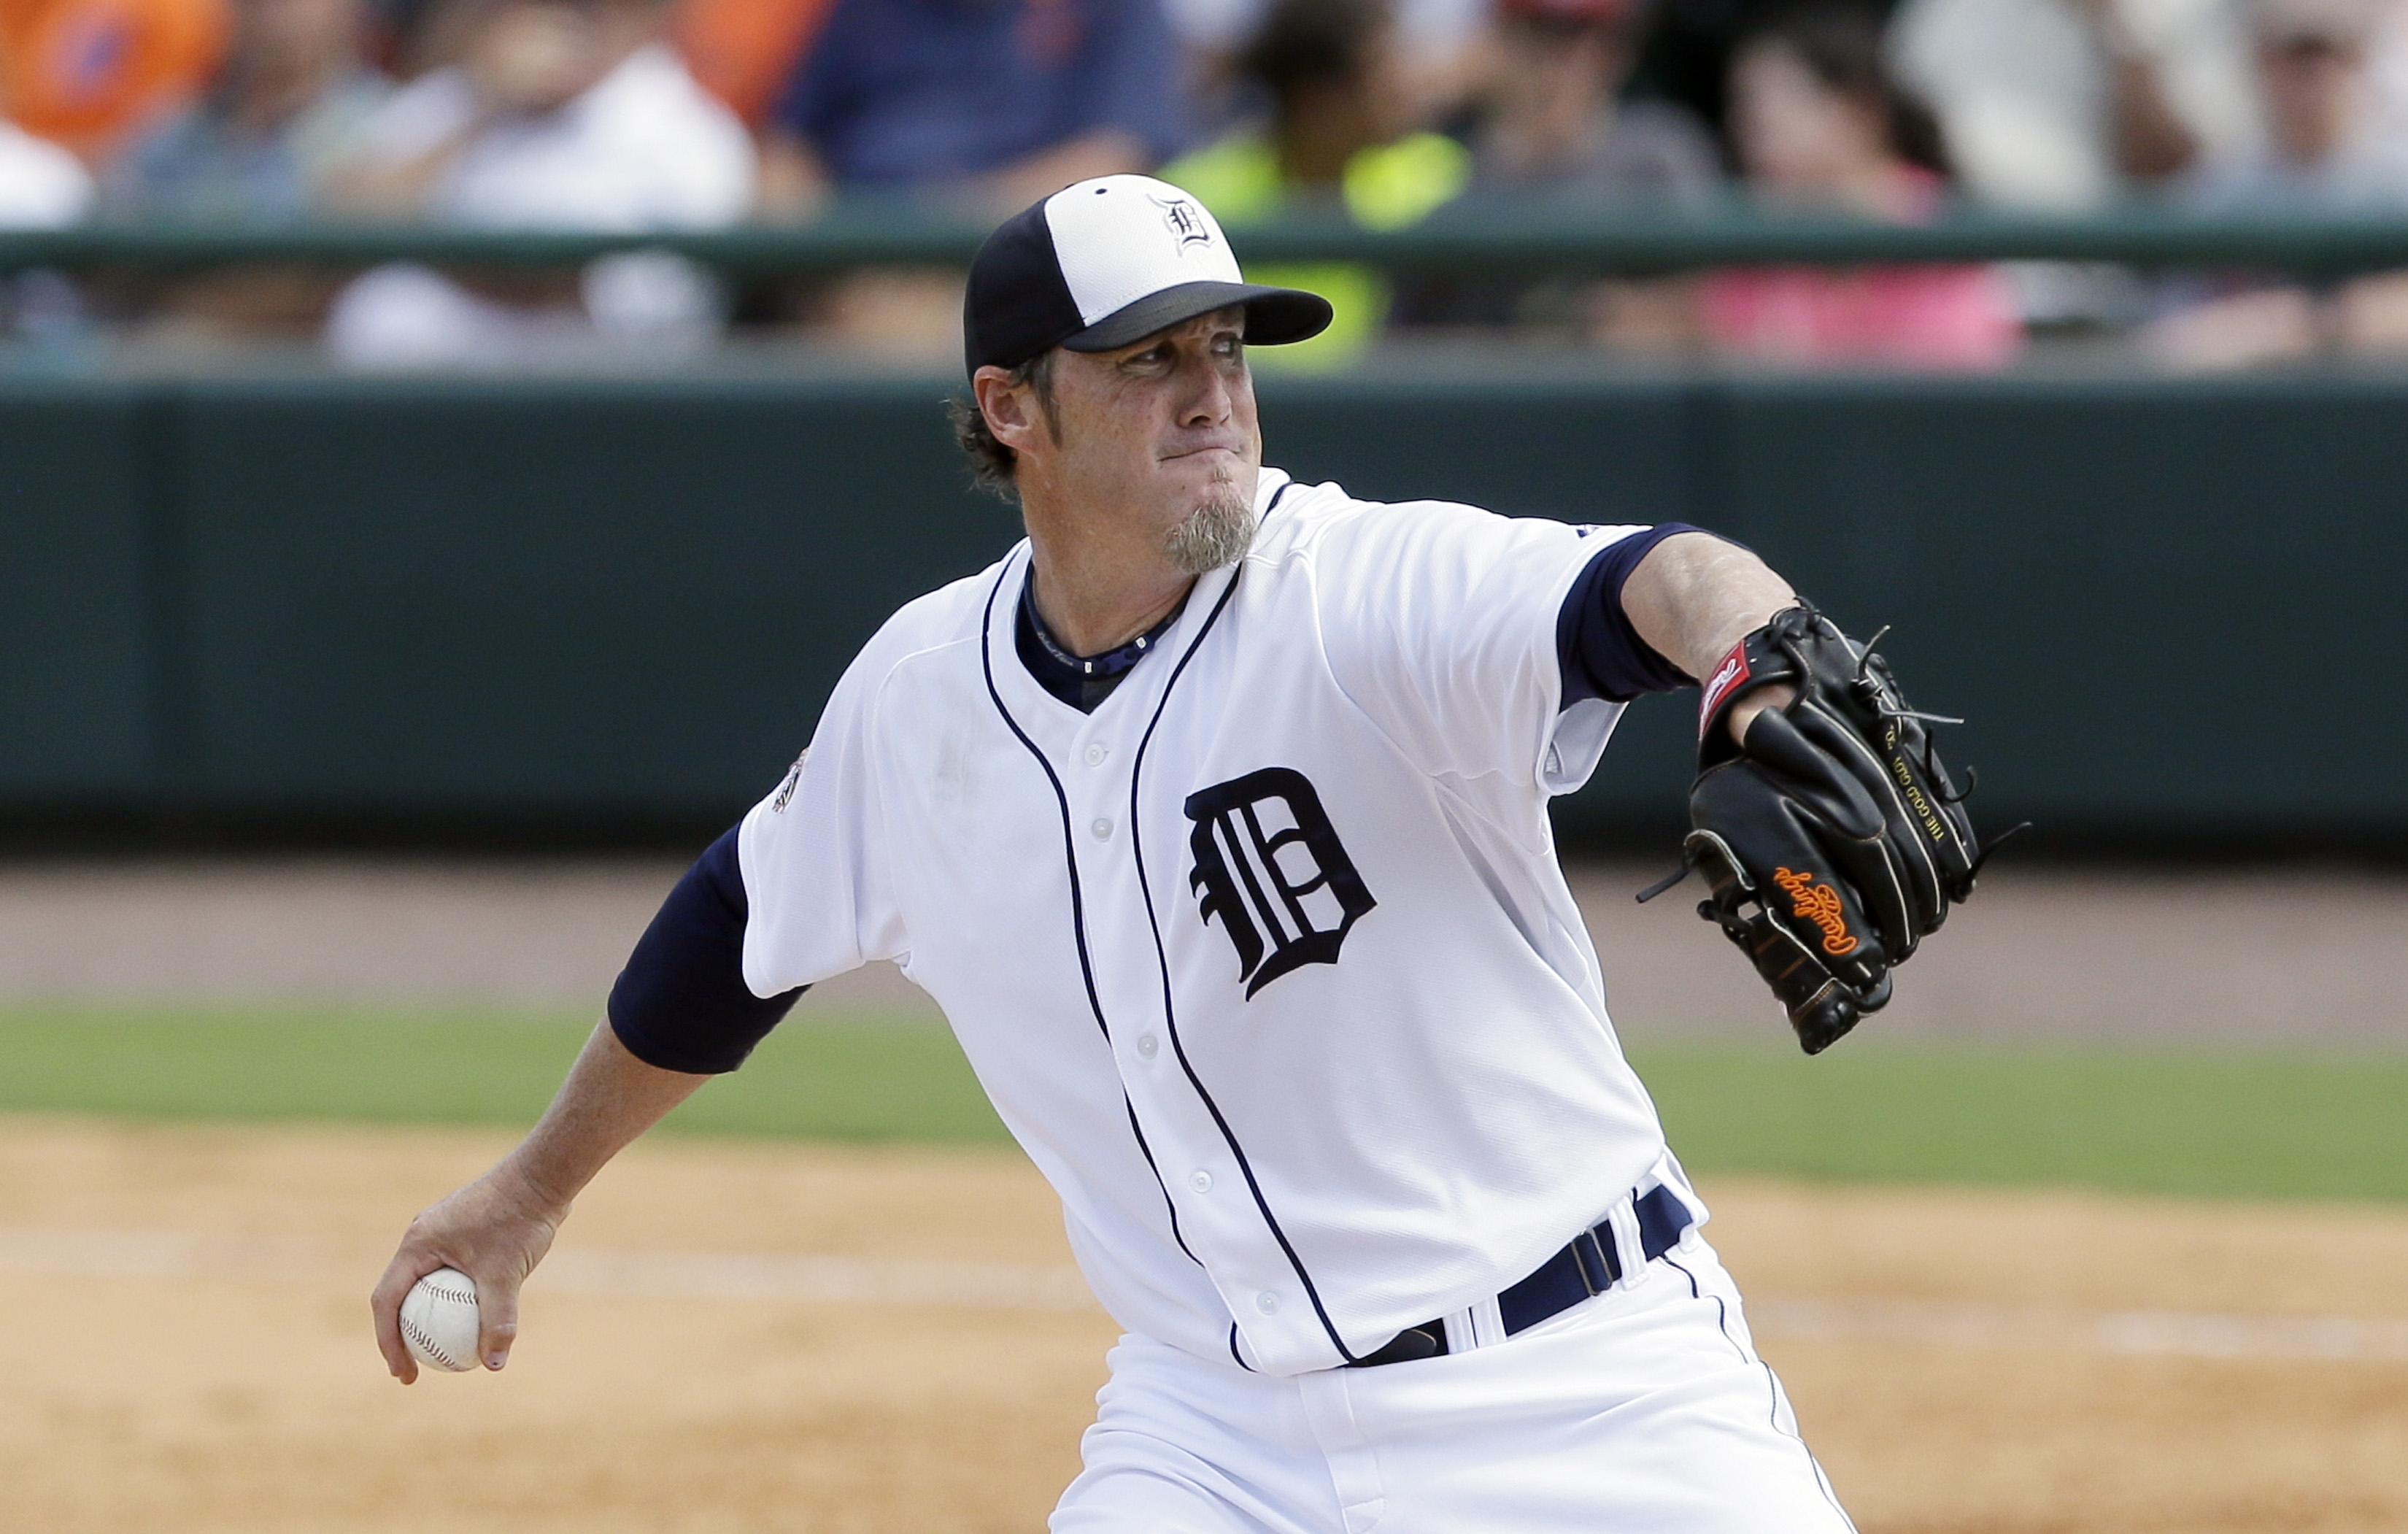 Detroit Tigers relief pitcher Joe Nathan throws during the sixth inning of a spring training exhibition baseball game against the Miami Marlins in Lakeland, Fla., Wednesday, March 25, 2015. (AP Photo/Carlos Osorio)